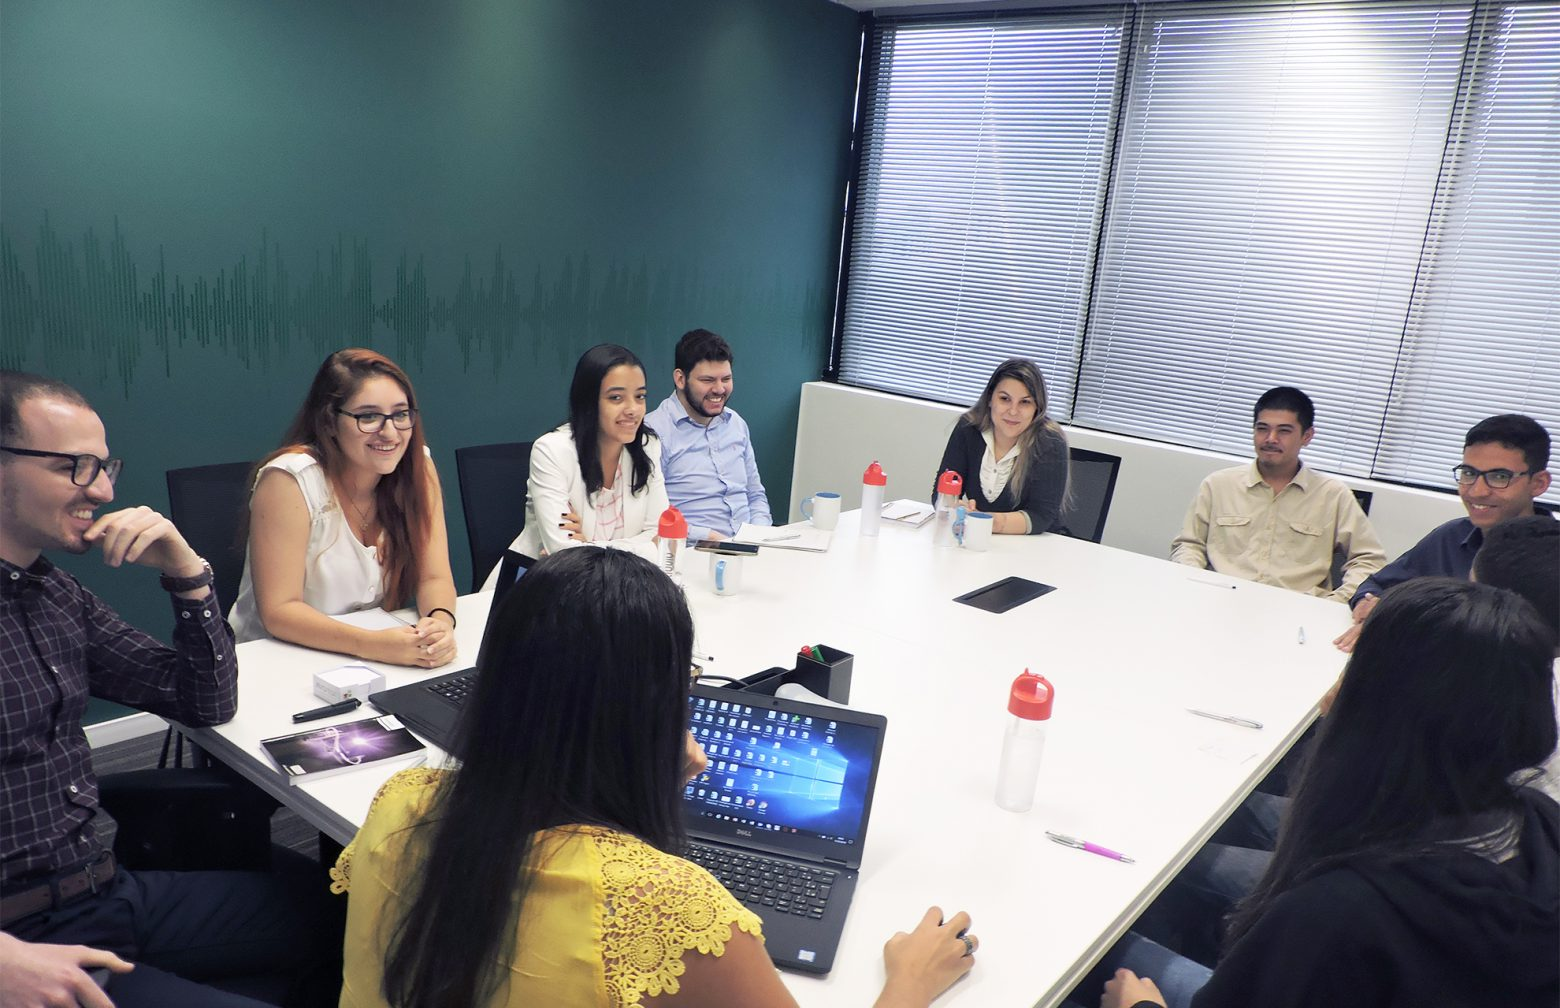 brazilian trainees during a meeting